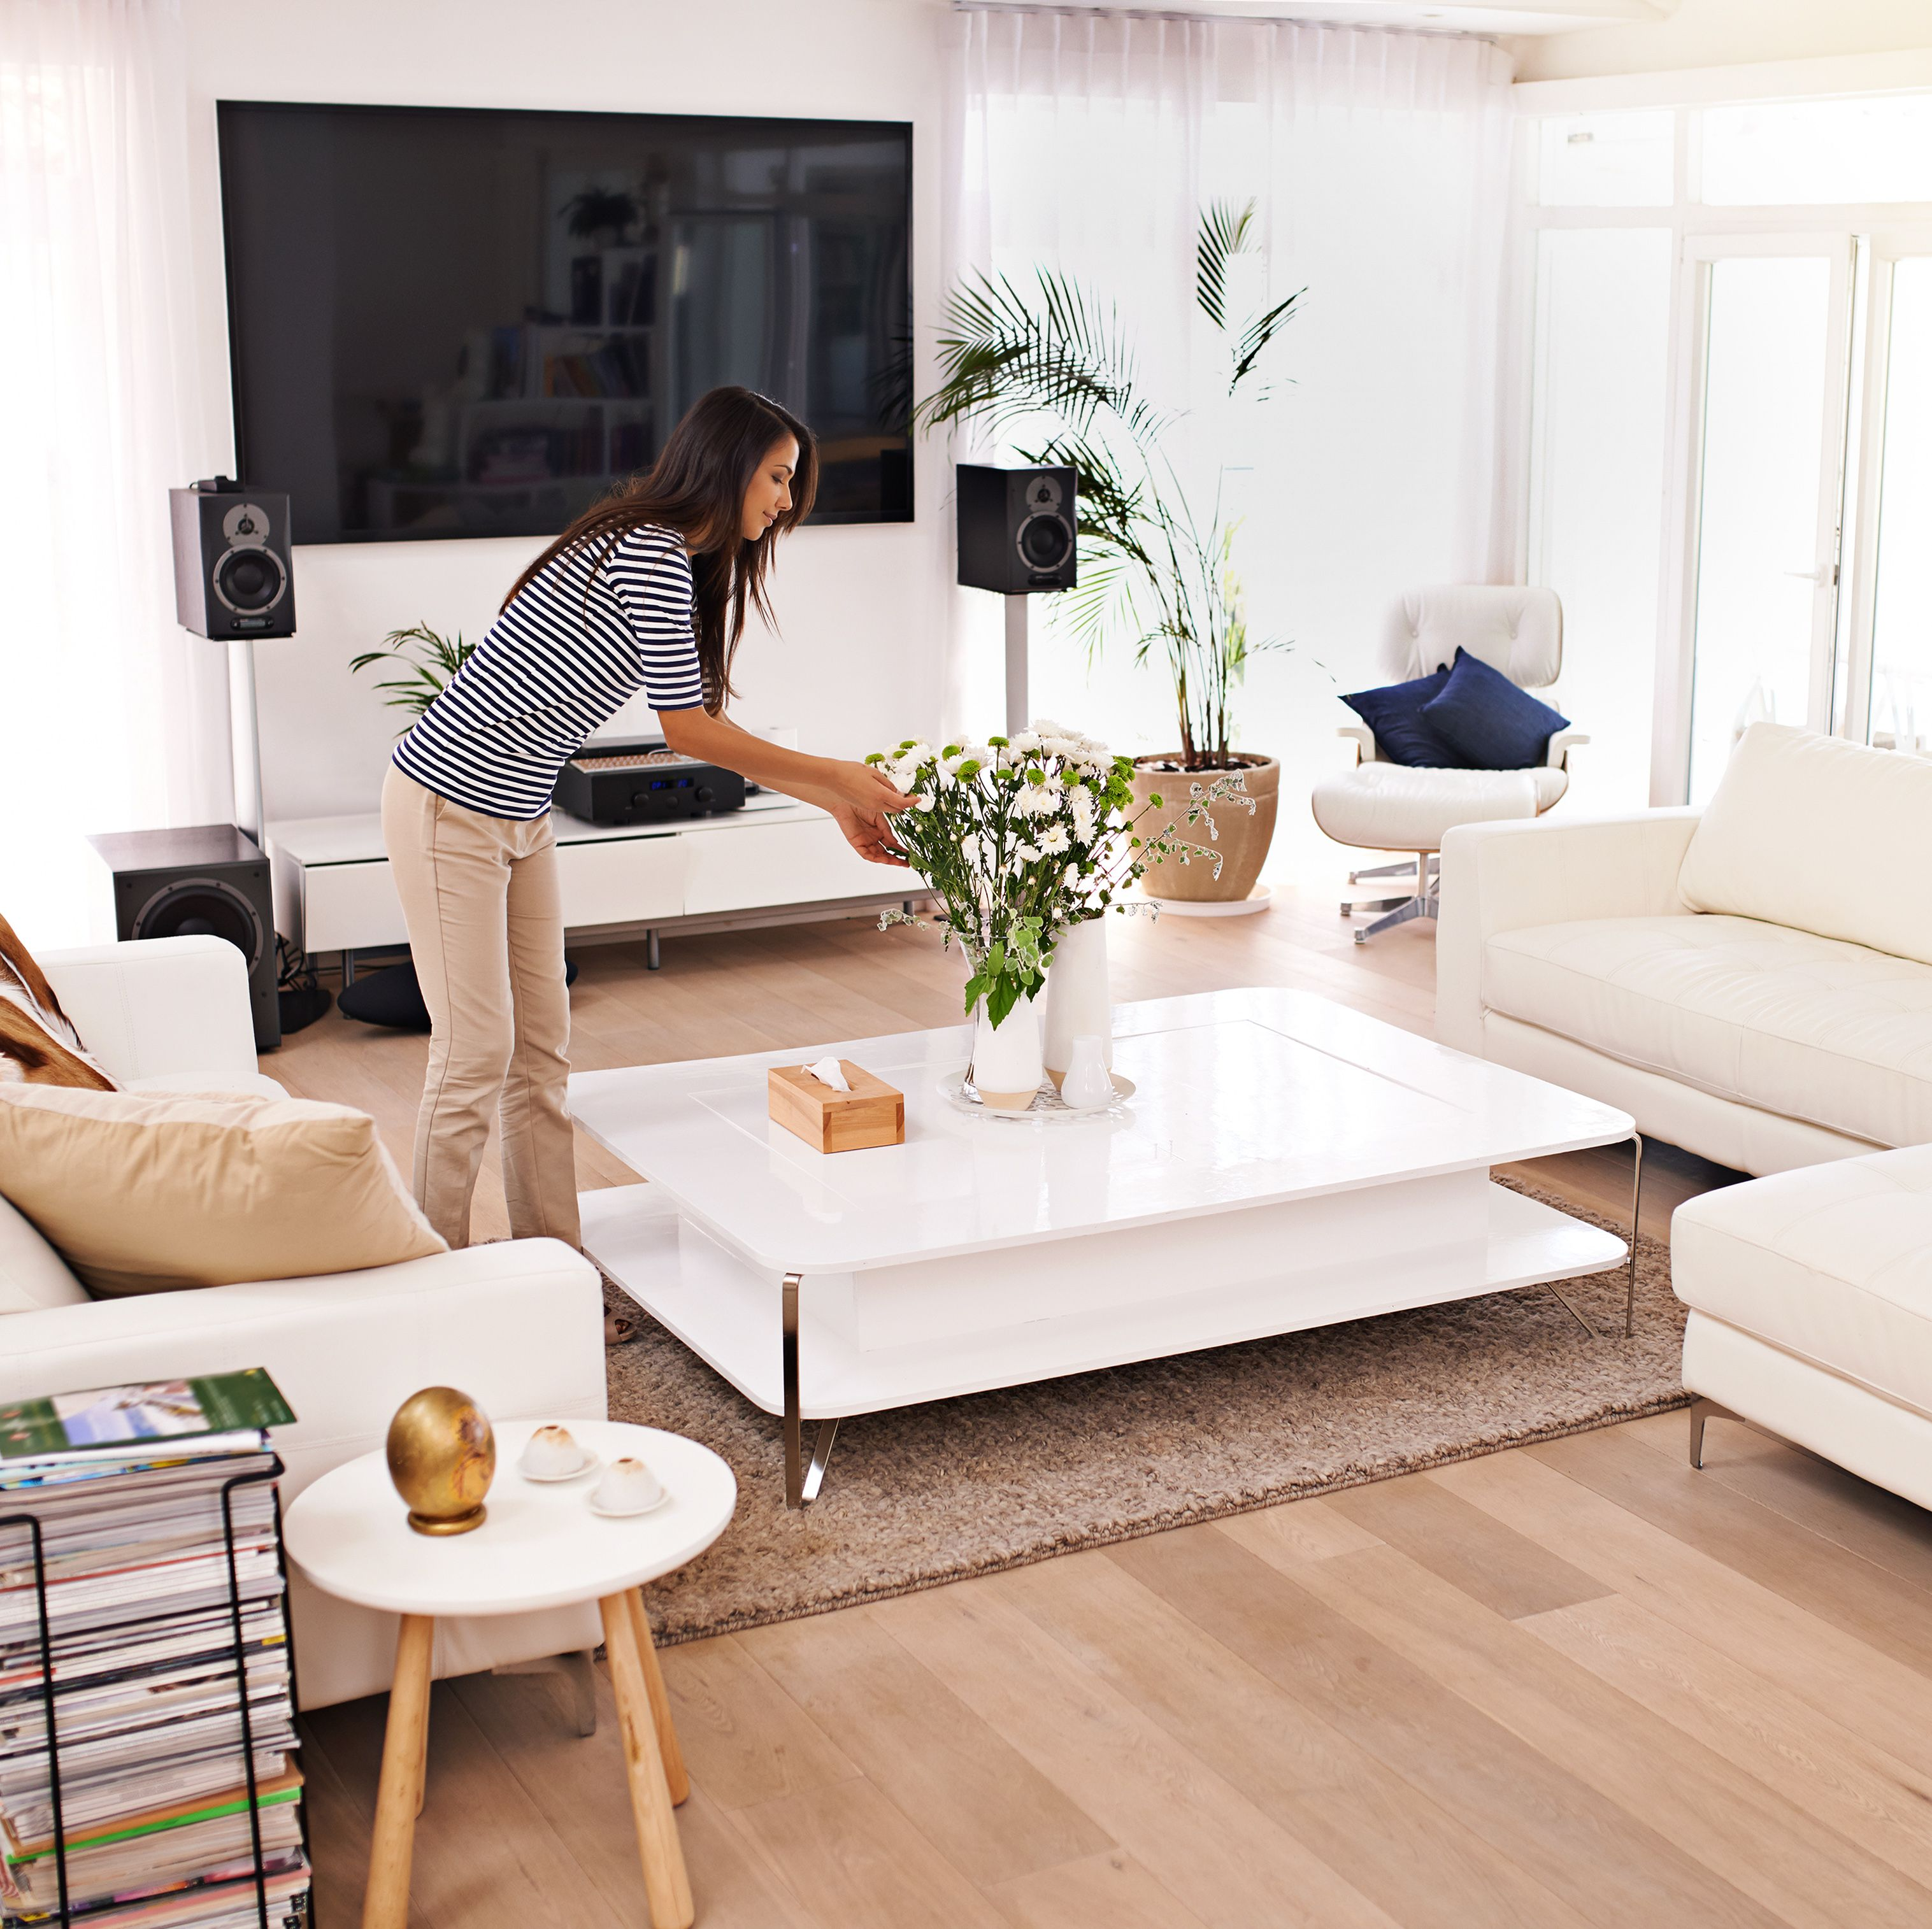 The dos and don'ts of decluttering, according to an expert